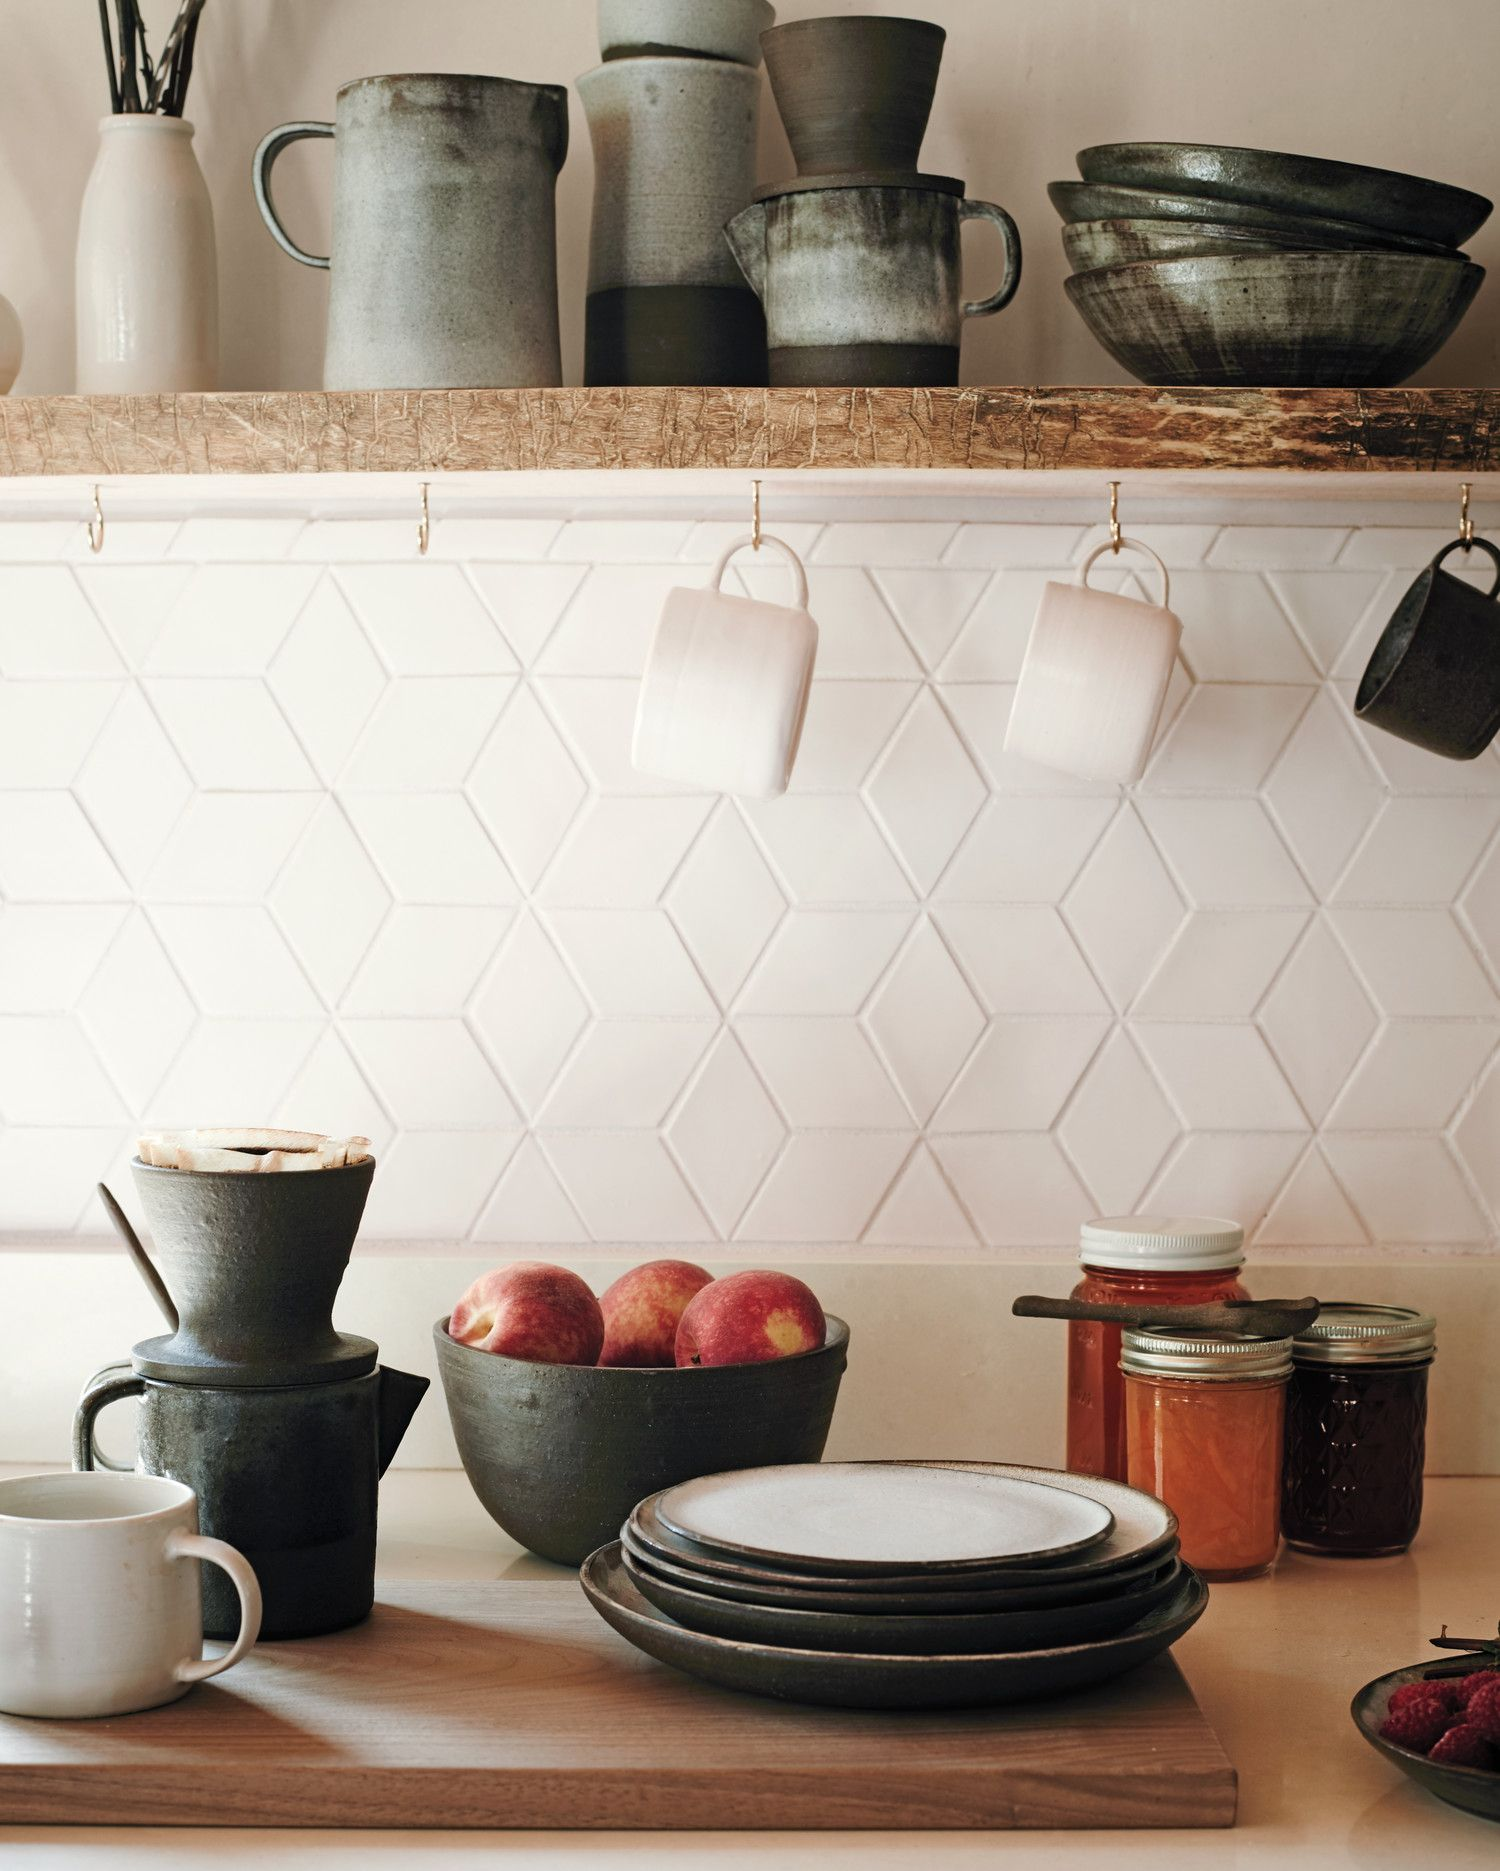 Scandinavian Kitchens Find Your Style Here: A Handcrafted Home: The House Tour